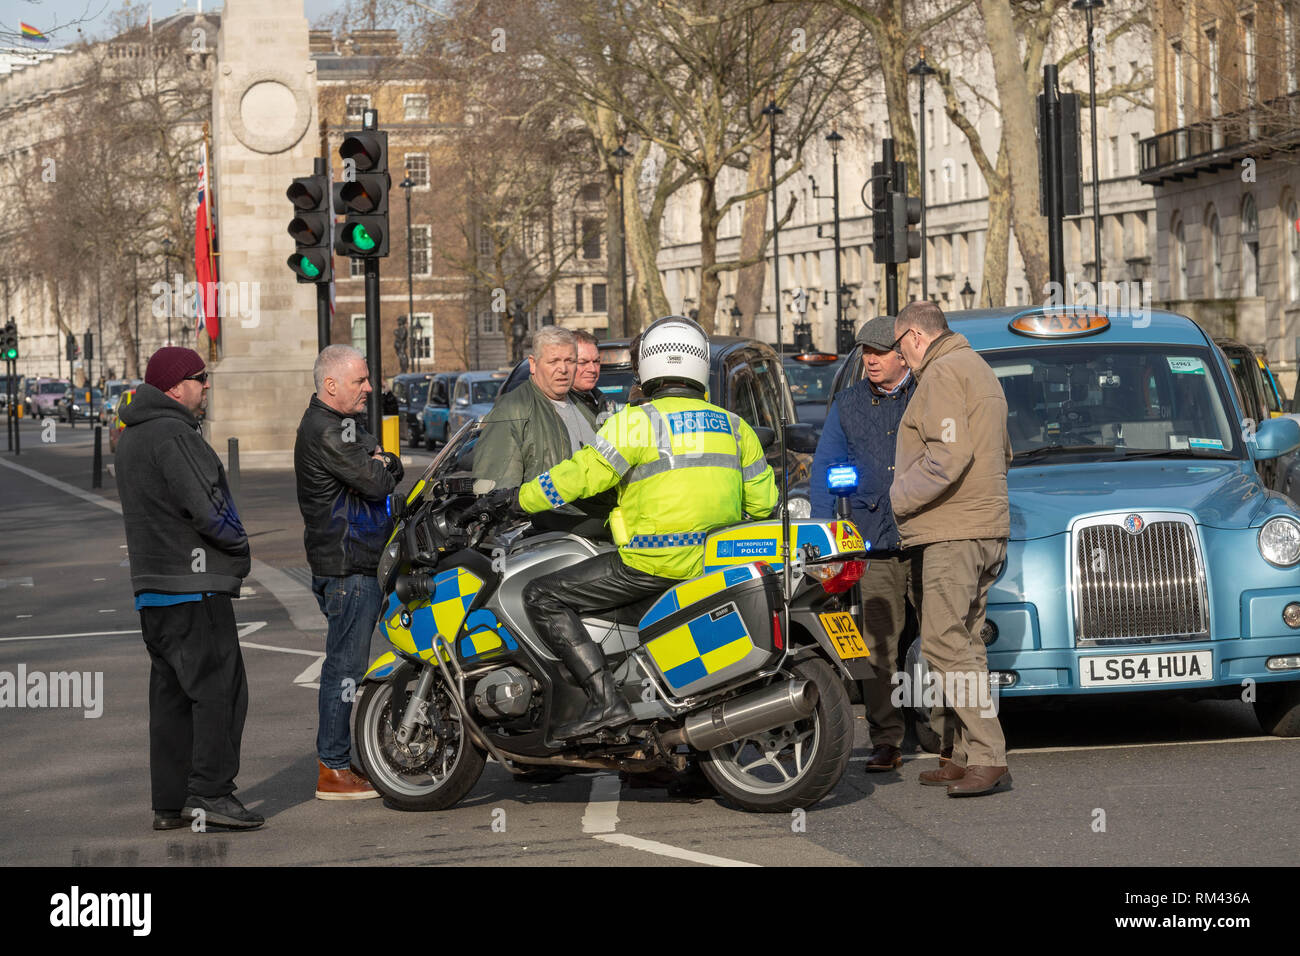 London, UK. 13th February 2019, London, UK. taxi protest closes roads around Parliament A police officer speaks to cab drivers to get them to move along Credit Ian Davidson/Alamy Live News Stock Photo